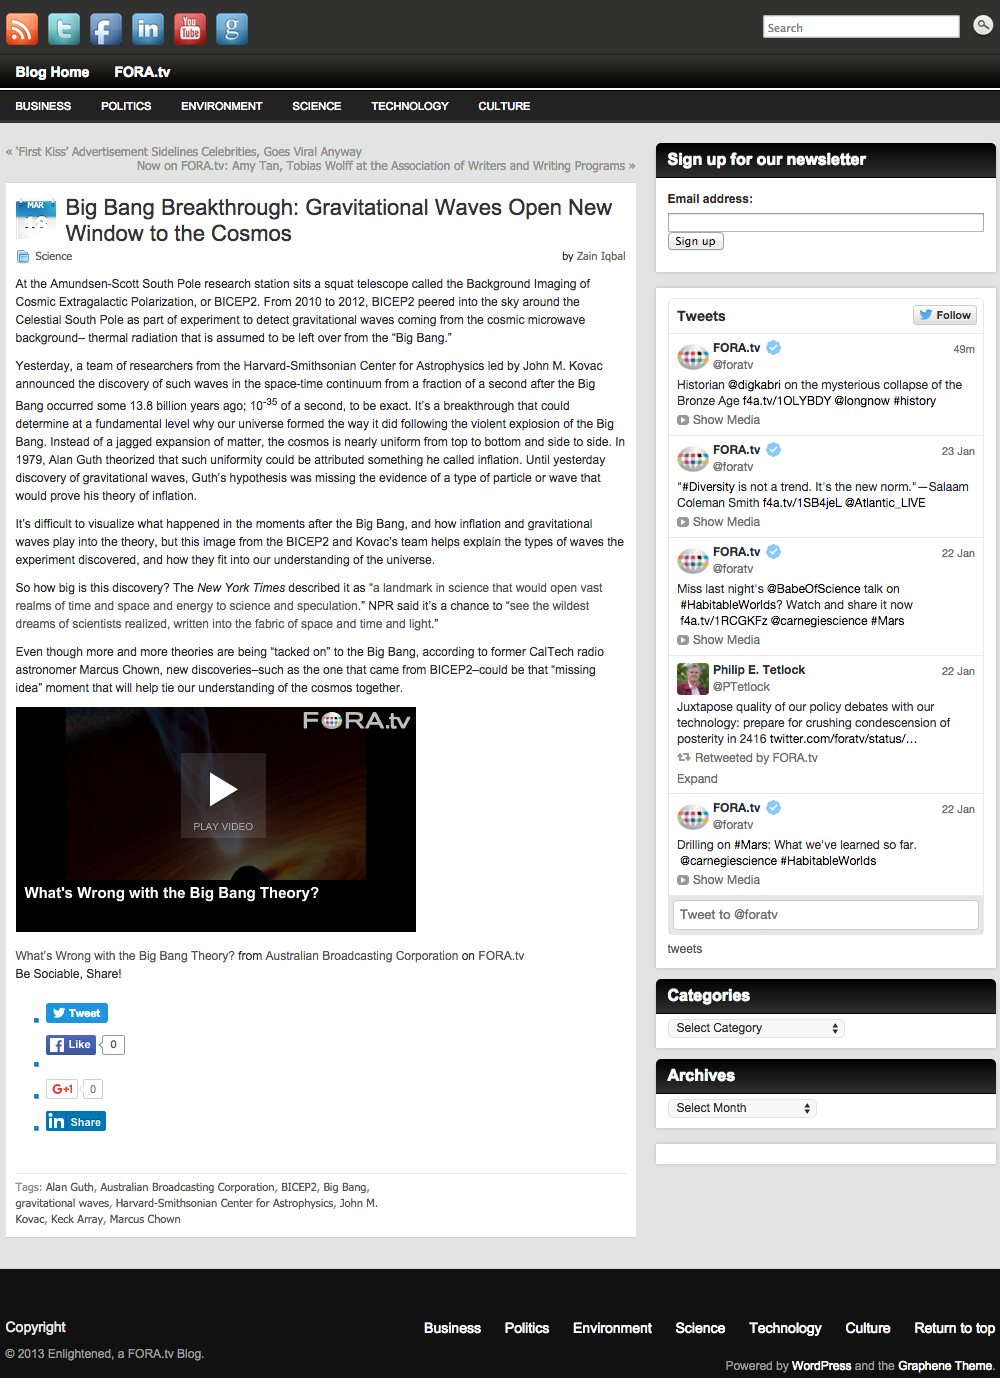 screencapture-enarchive-fora-tv-2014-03-big-bang-breakthrough-gravitational-waves-open-new-window-to-the-cosmos.png